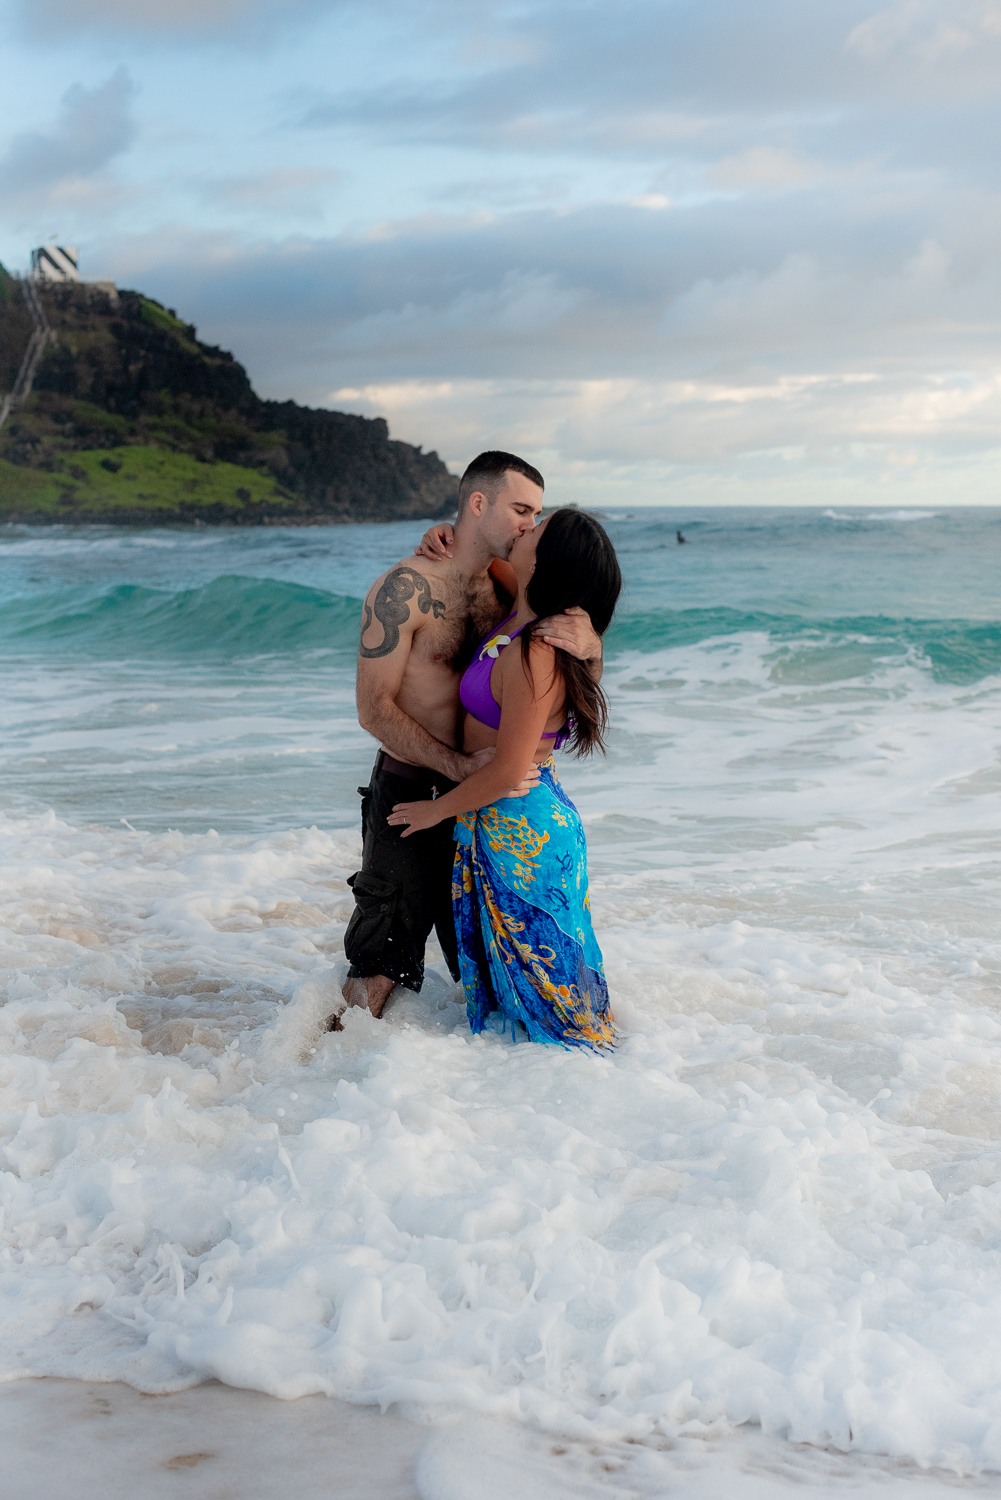 Couple kissing in waves at Kaneohe beach